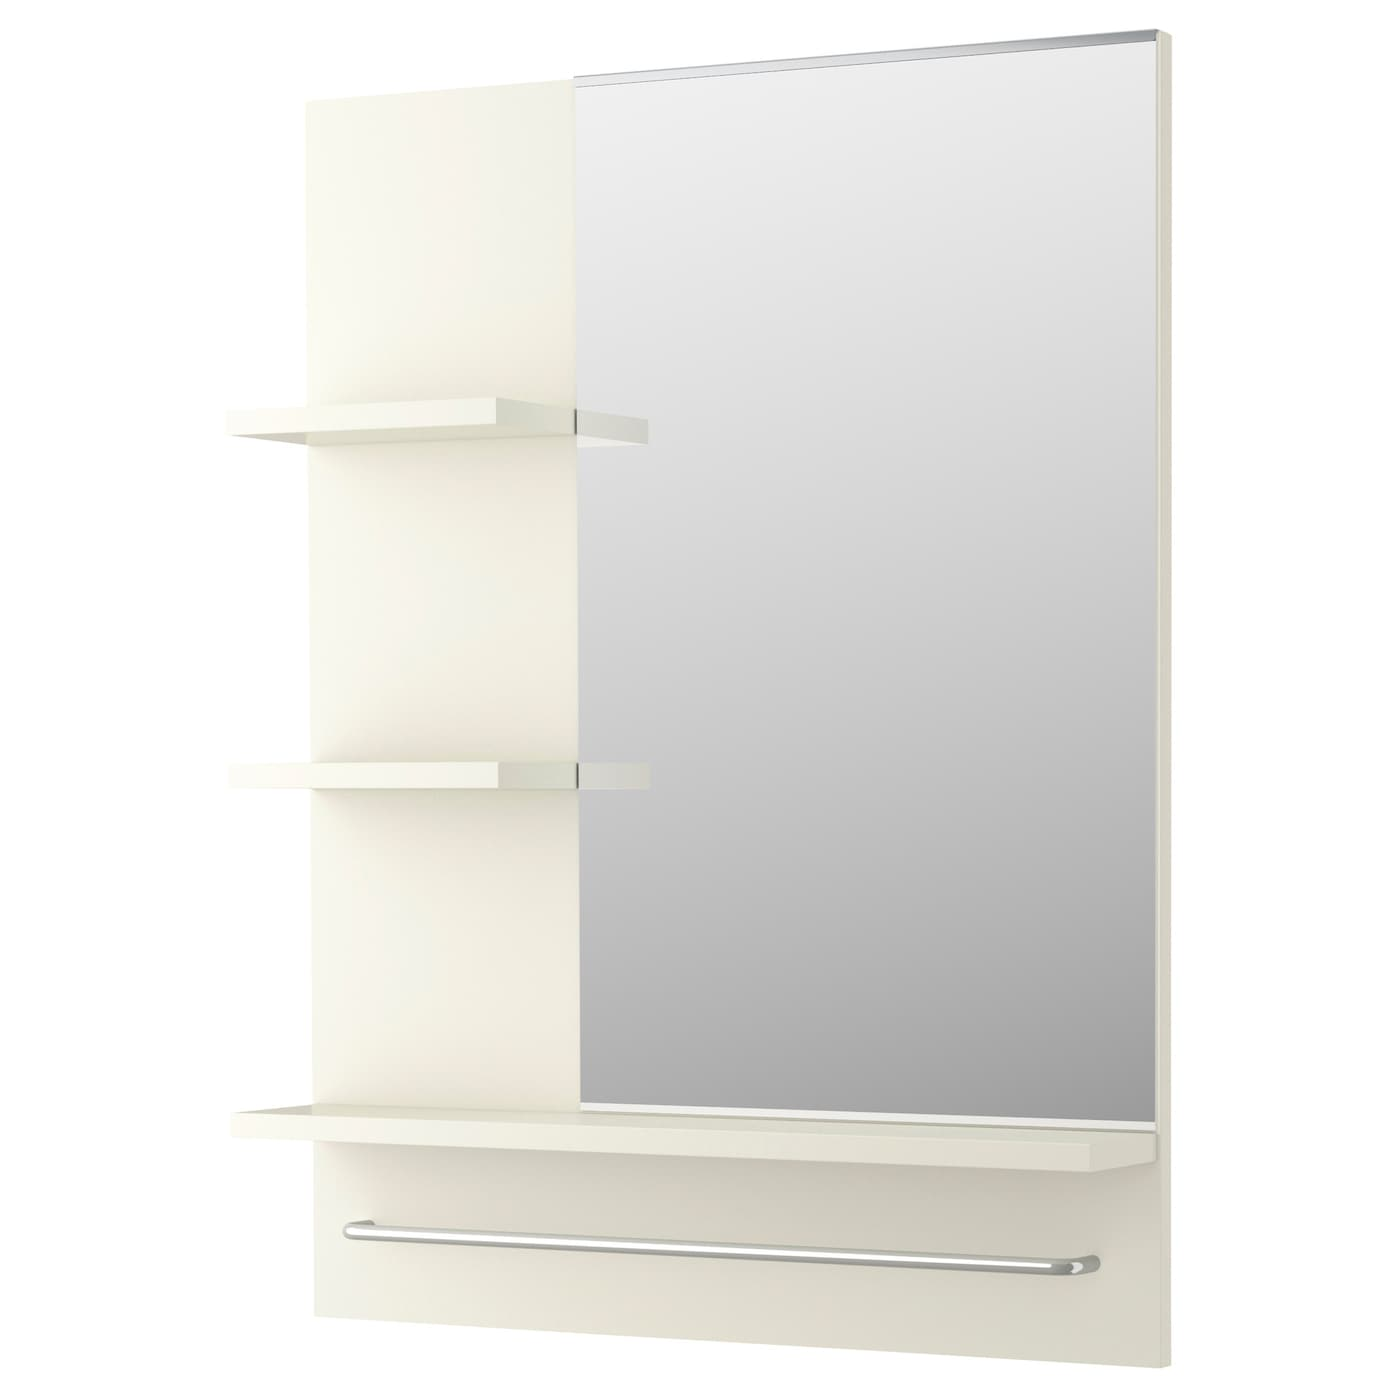 Bathroom mirrors large bathroom mirrors ikea for Miroir mural ikea